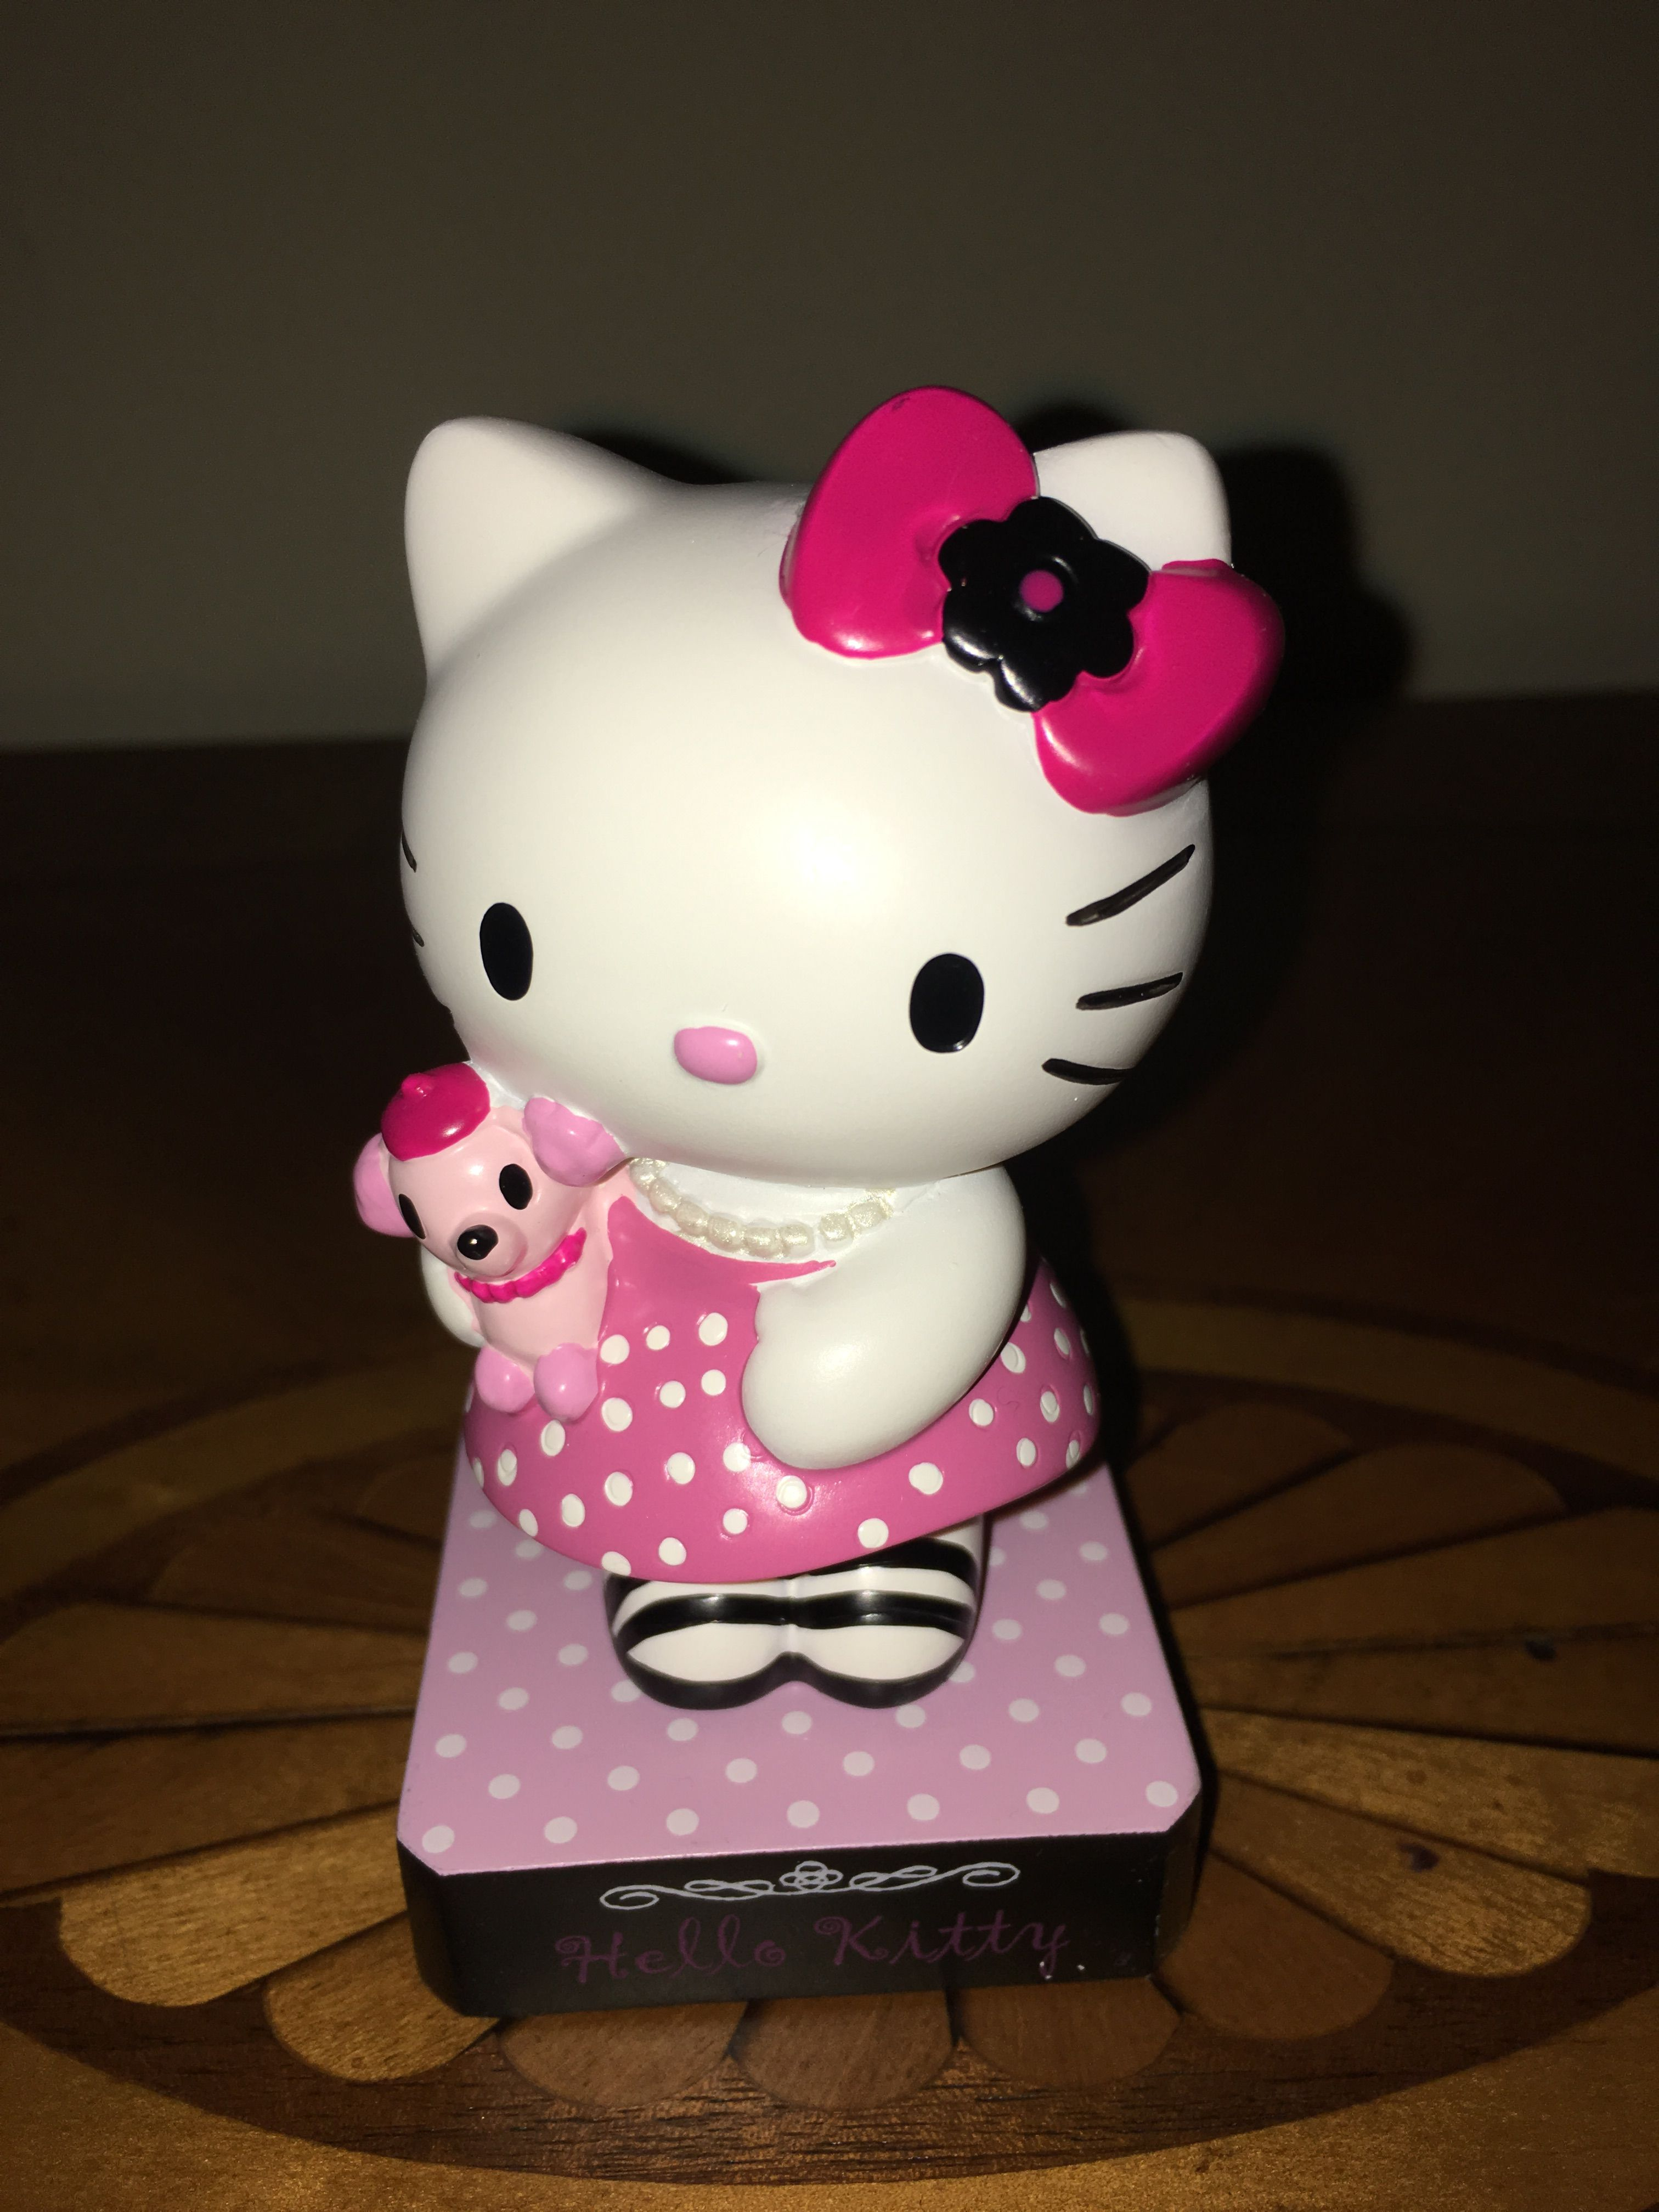 Hello Kitty Bobble Head Bobble Body Pink Polka Dot Dress